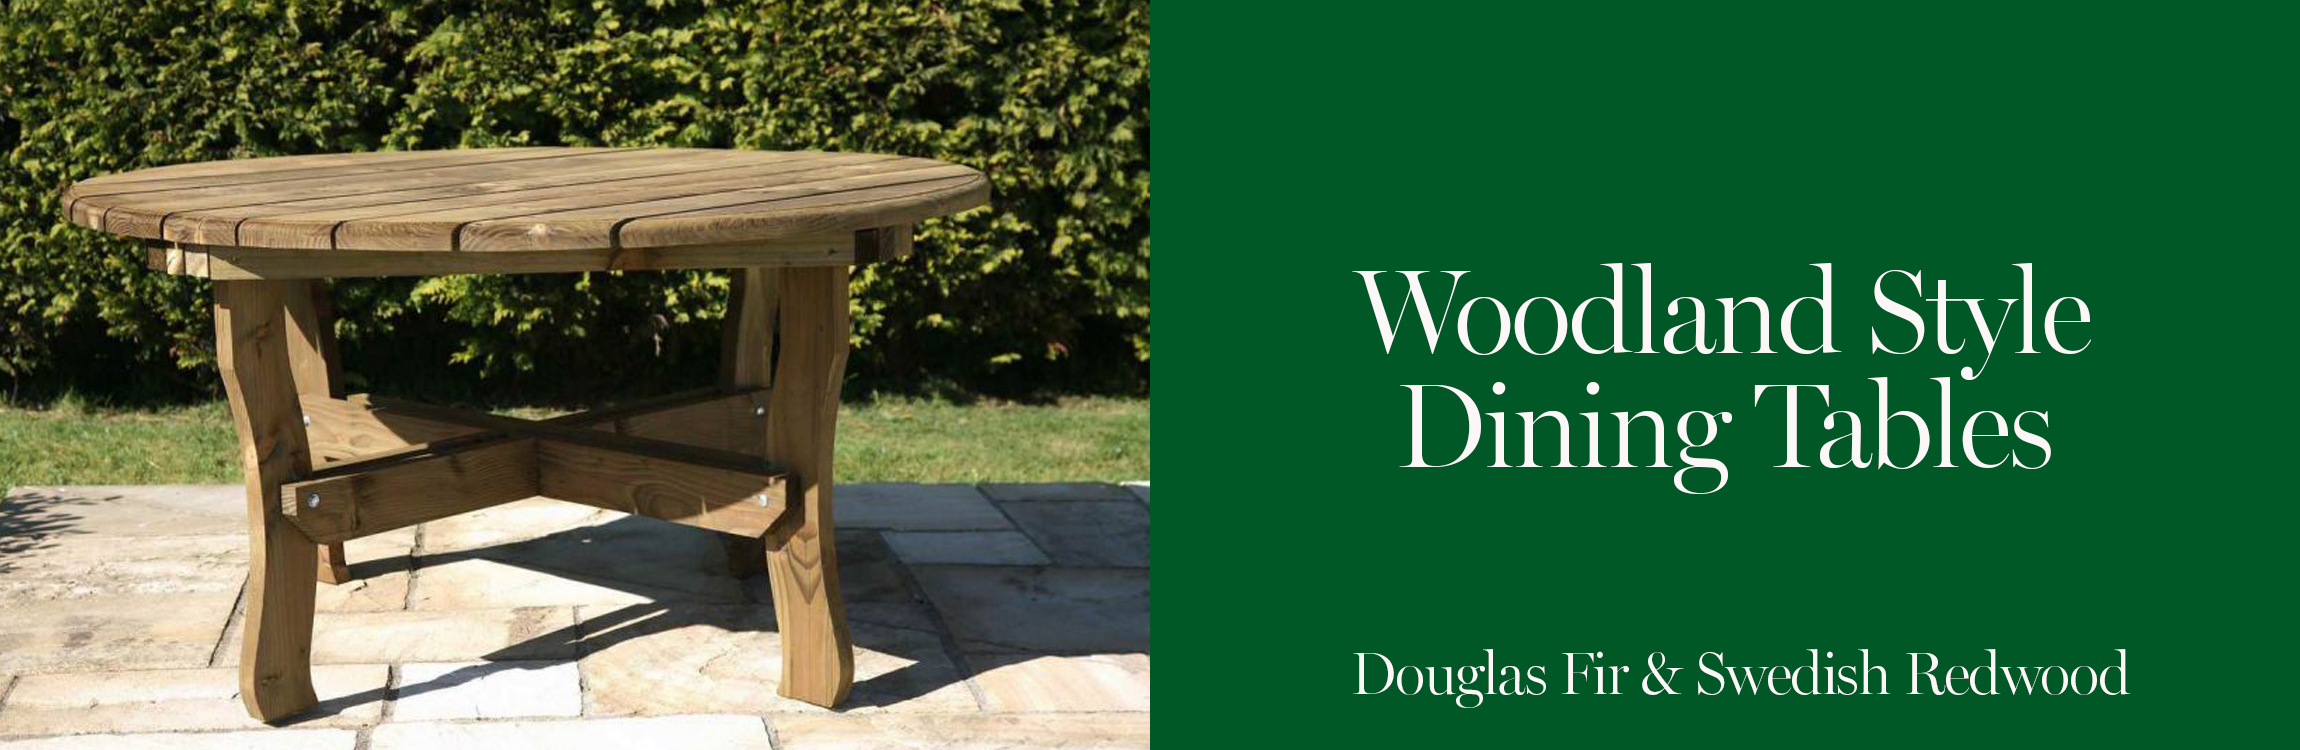 Woodland Garden Tables